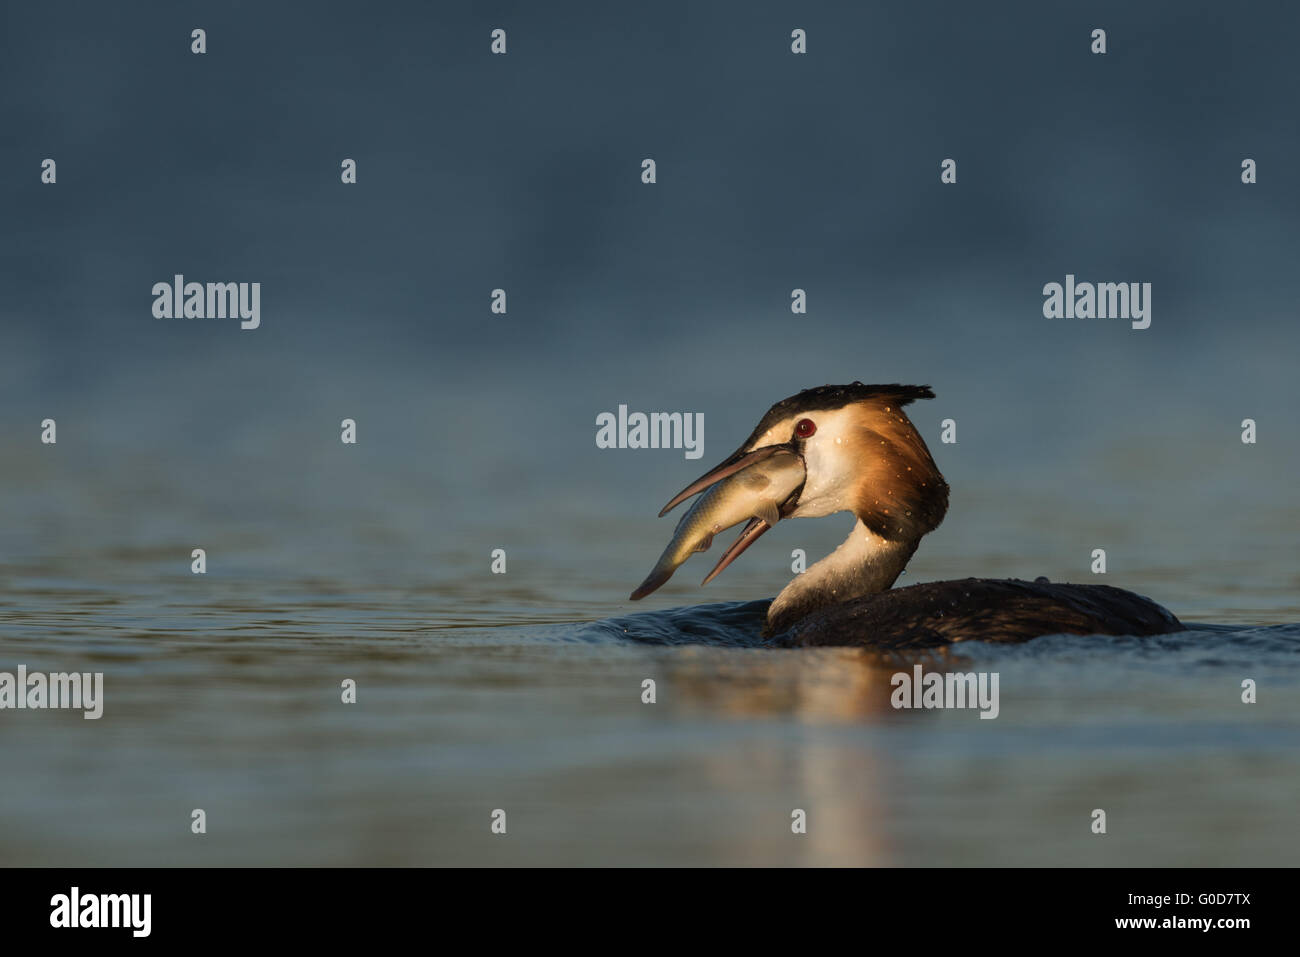 Great crested grebe Hungary - Stock Image